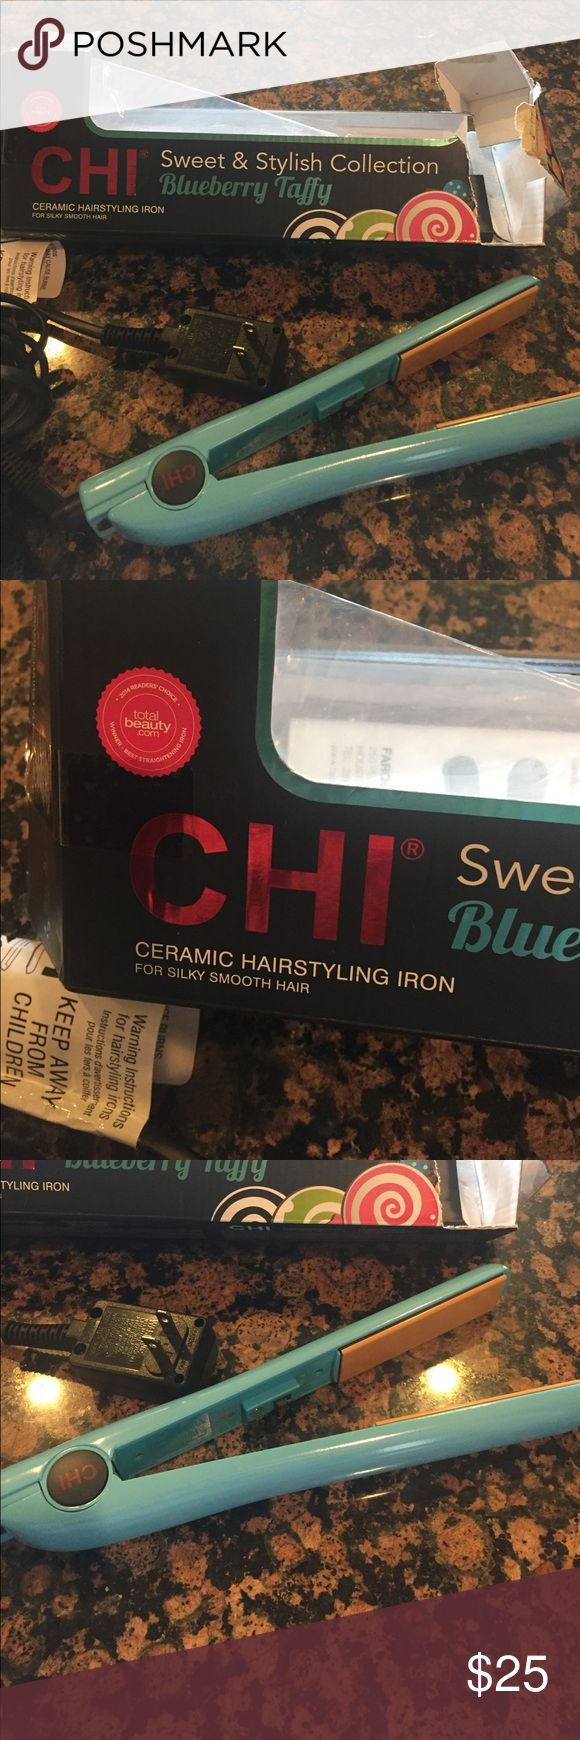 New Chi flat iron! We have too many! Only used once and in great working condition. My daughter decided not to straighten her hair any longer! Paid $58 at Marshall's. I do not have original receipt. Will ship box, warranty and all you see in pictures. Accessories Hair Accessories